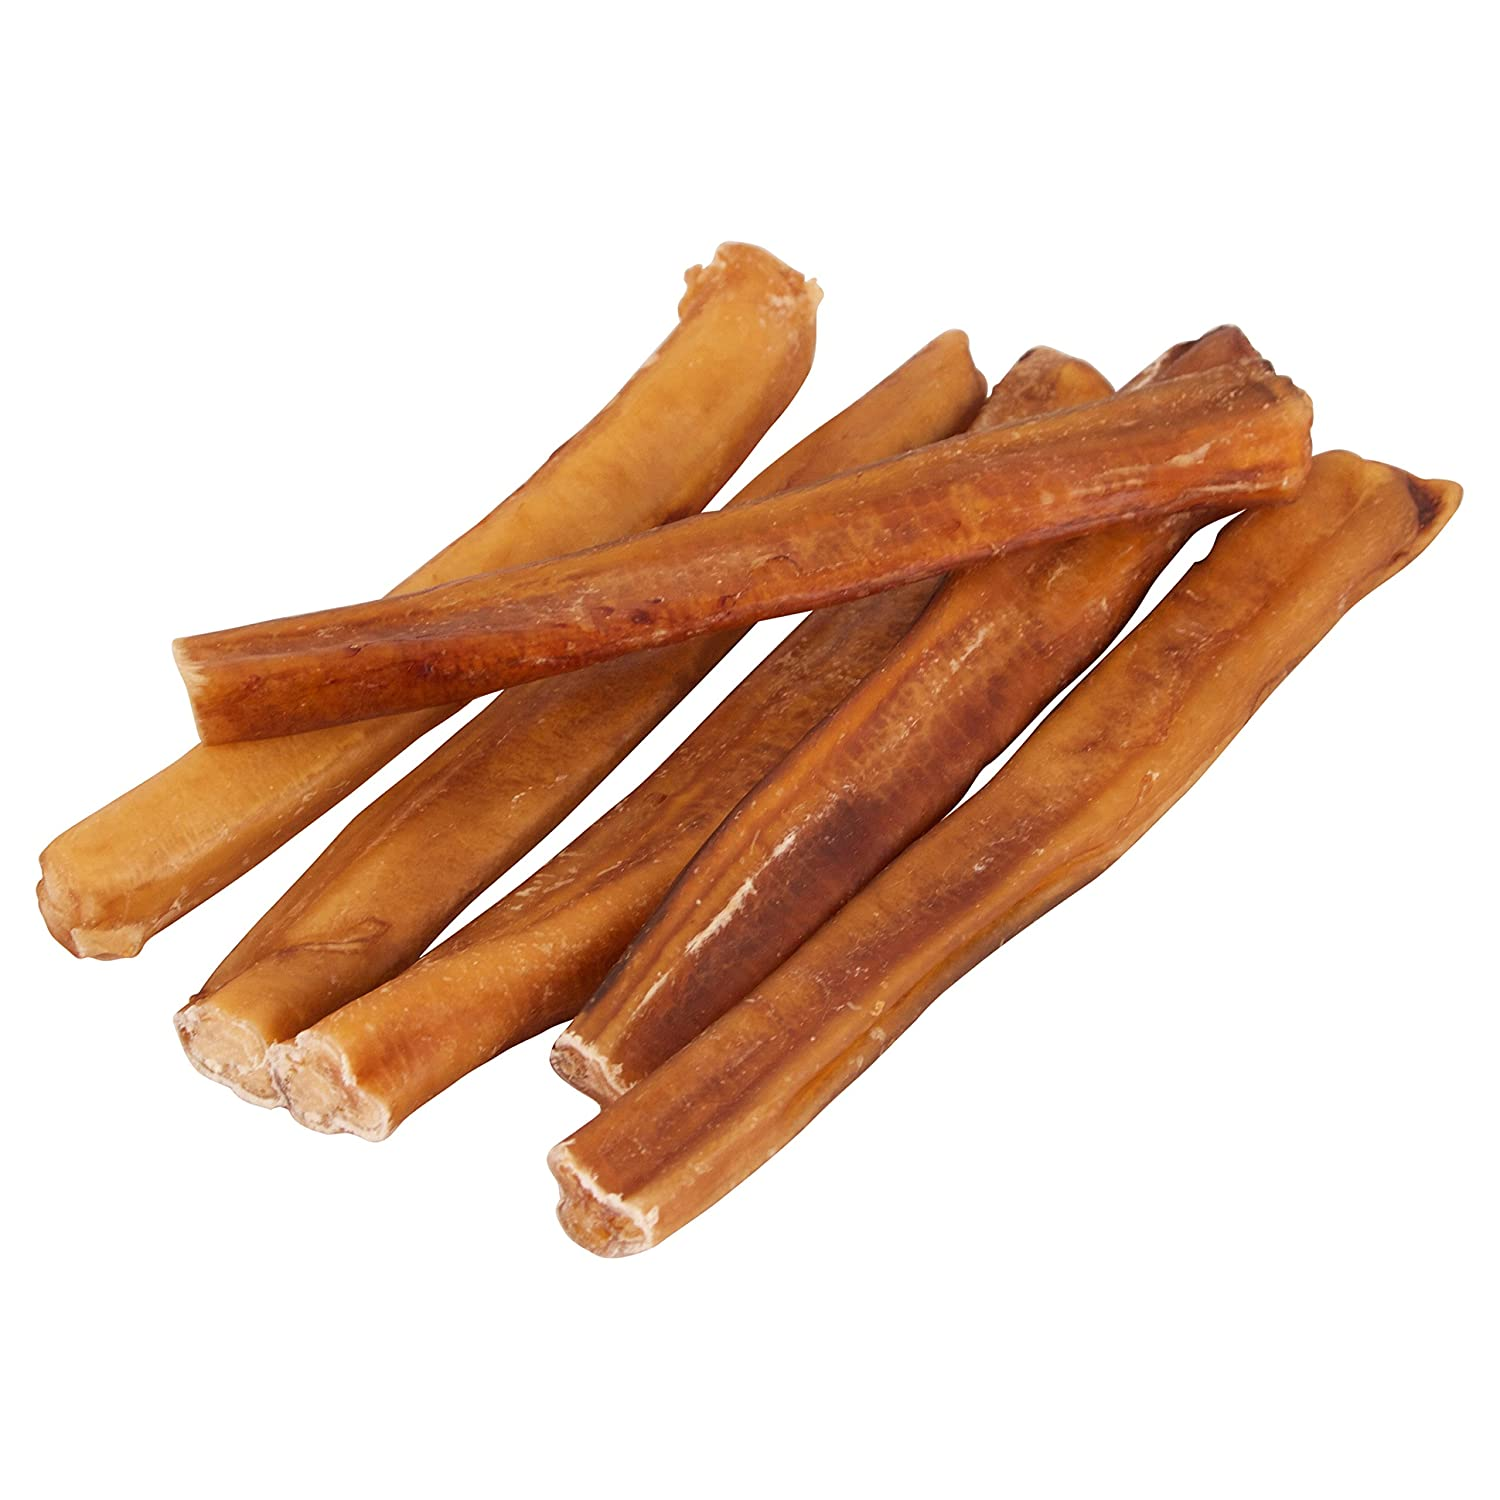 Pawstruck 9 Straight Bully Sticks for Dogs X-Large Thickness All Natural Odorless Bully Bones Long Lasting Chew Dental Treats Best Thick Bullie Sticks for K9 or Puppies Grass-Fed Beef